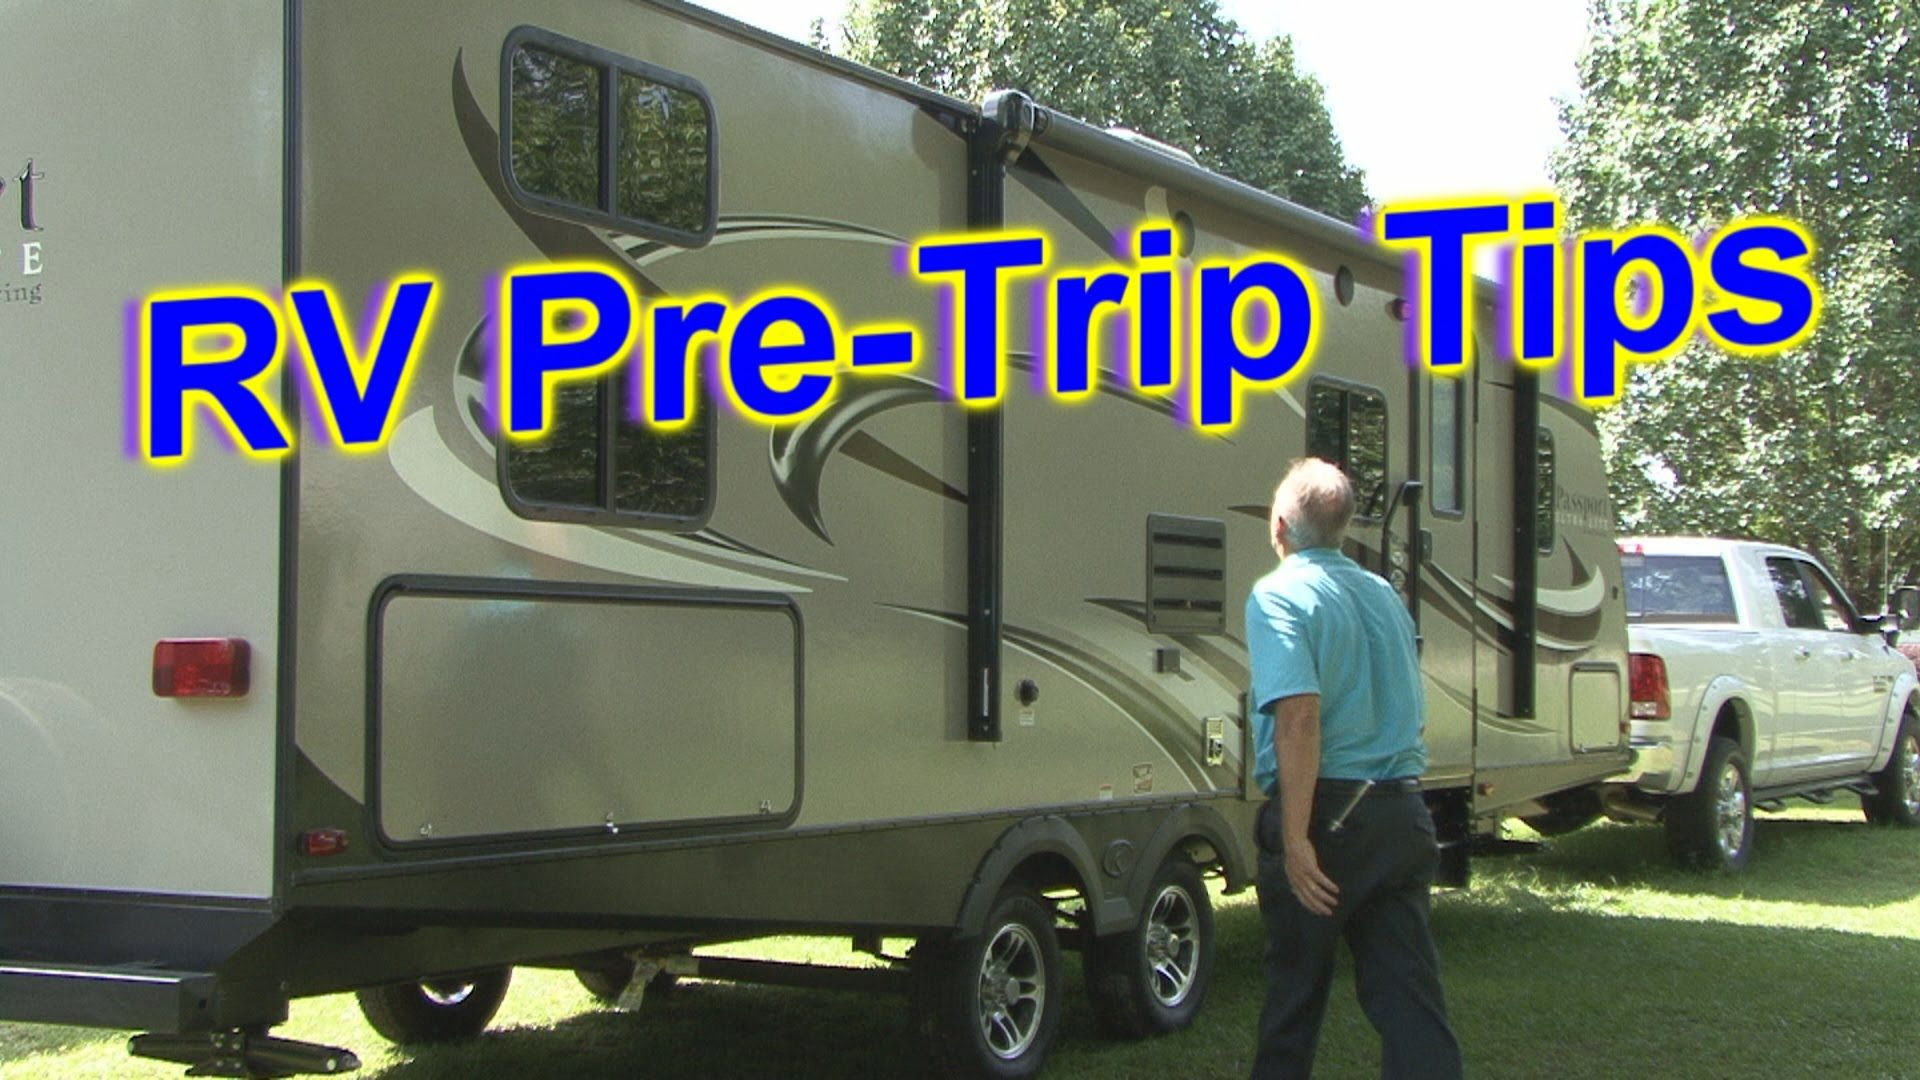 Rv 101 With Mark Polk Why It Is Important To Make Pre Trip Checks On Your Rv Prior To Leaving On A Trip Https Cheap Travel Insurance Rv Vacation